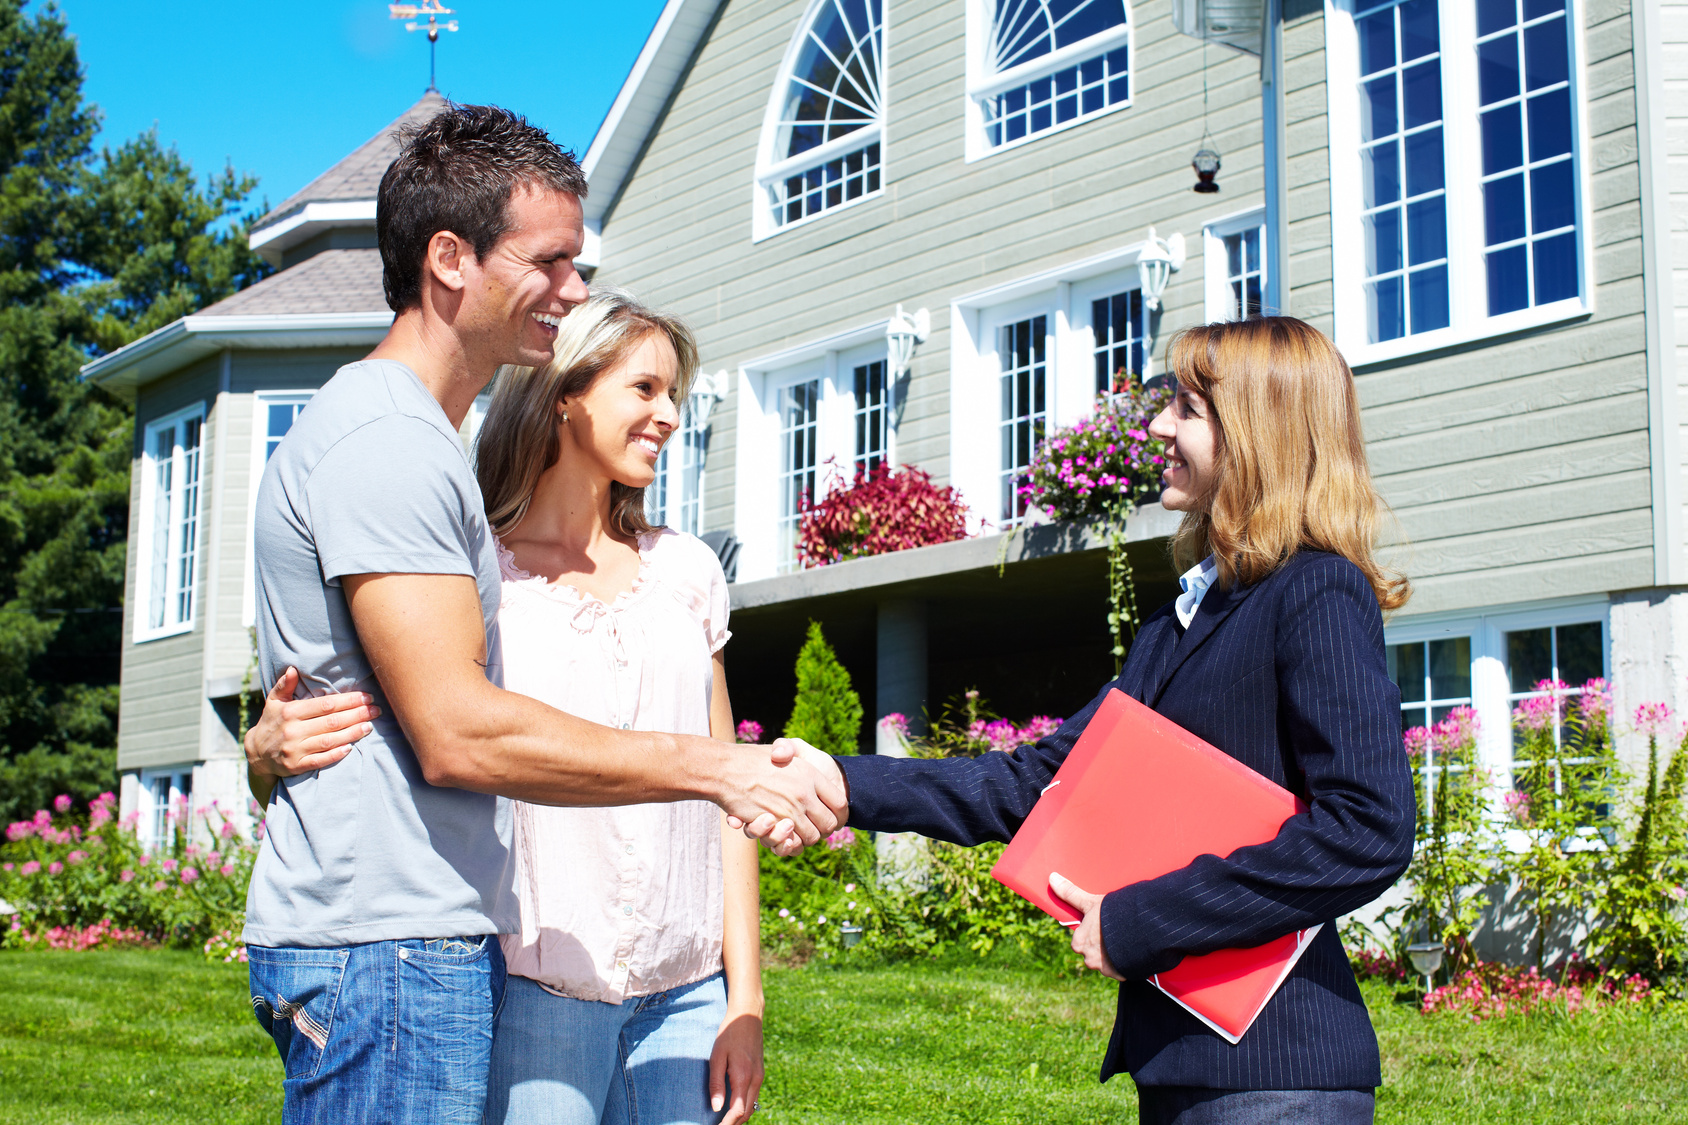 A Complete Guide To Find A Good Real Estate Agent